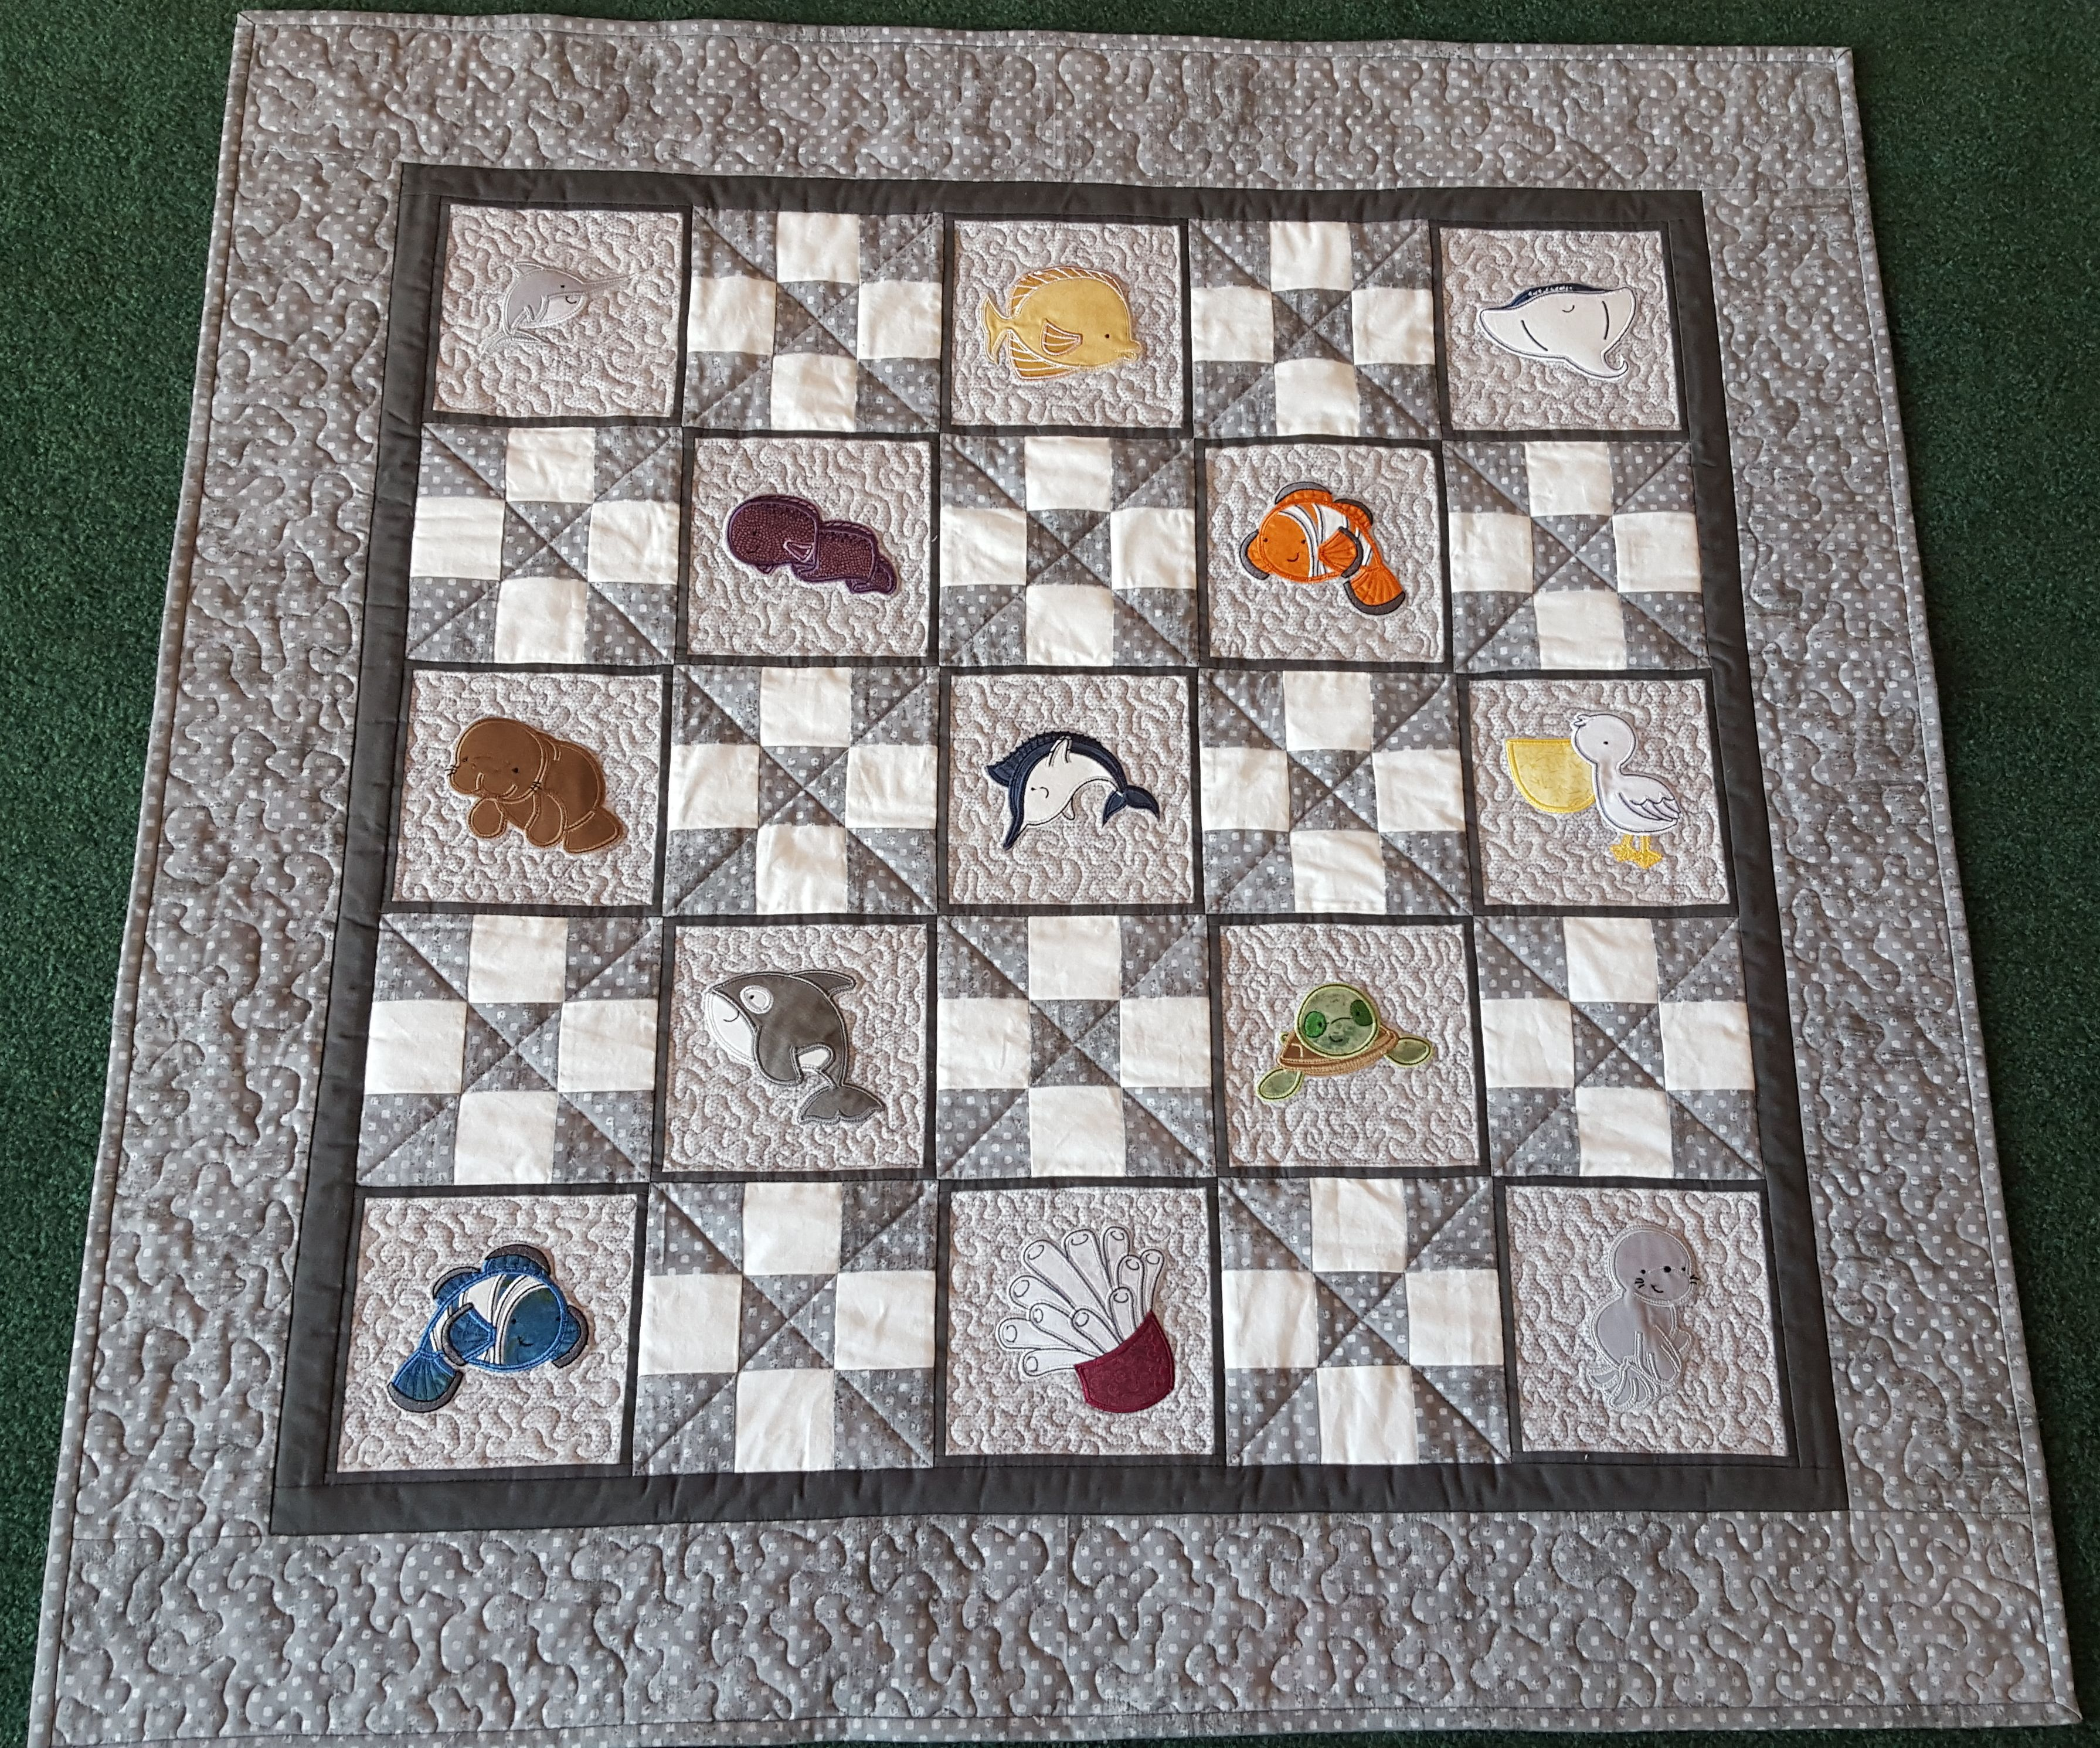 Jeanette made this striking quilt using designs from Sea Creatures Too Applique (http://www.bunnycup.com/embroidery/design/SeaCreaturesTooApplique).